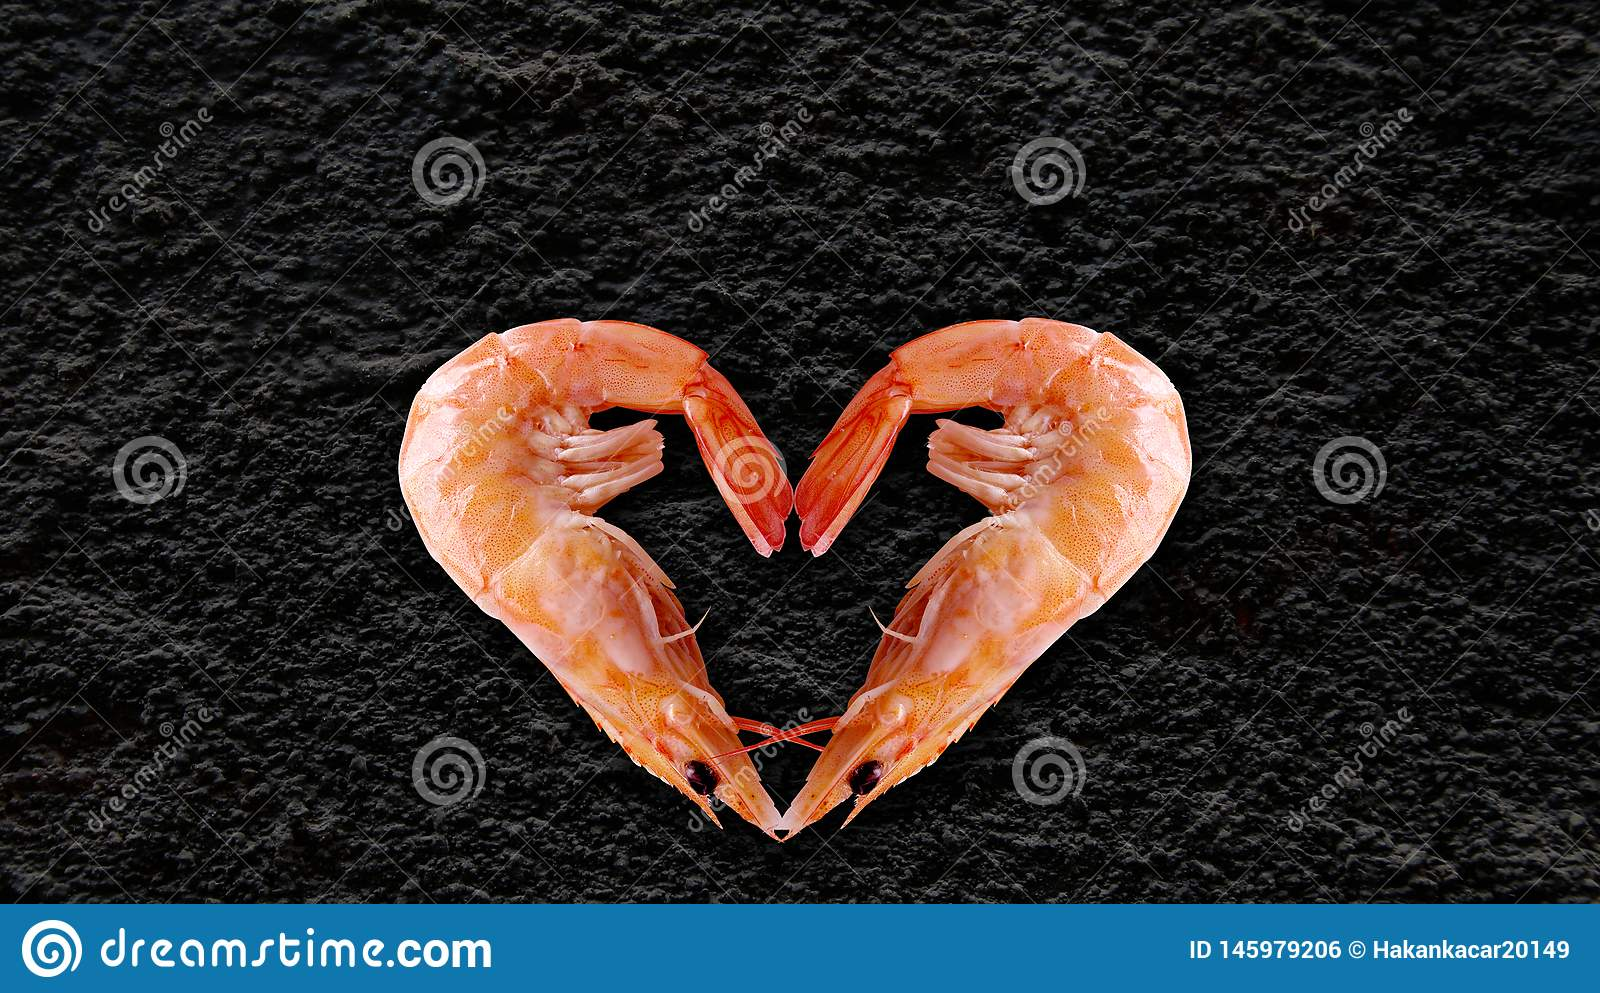 Sea products, Heart Shaped Shrimp, black background at the back to write your article.